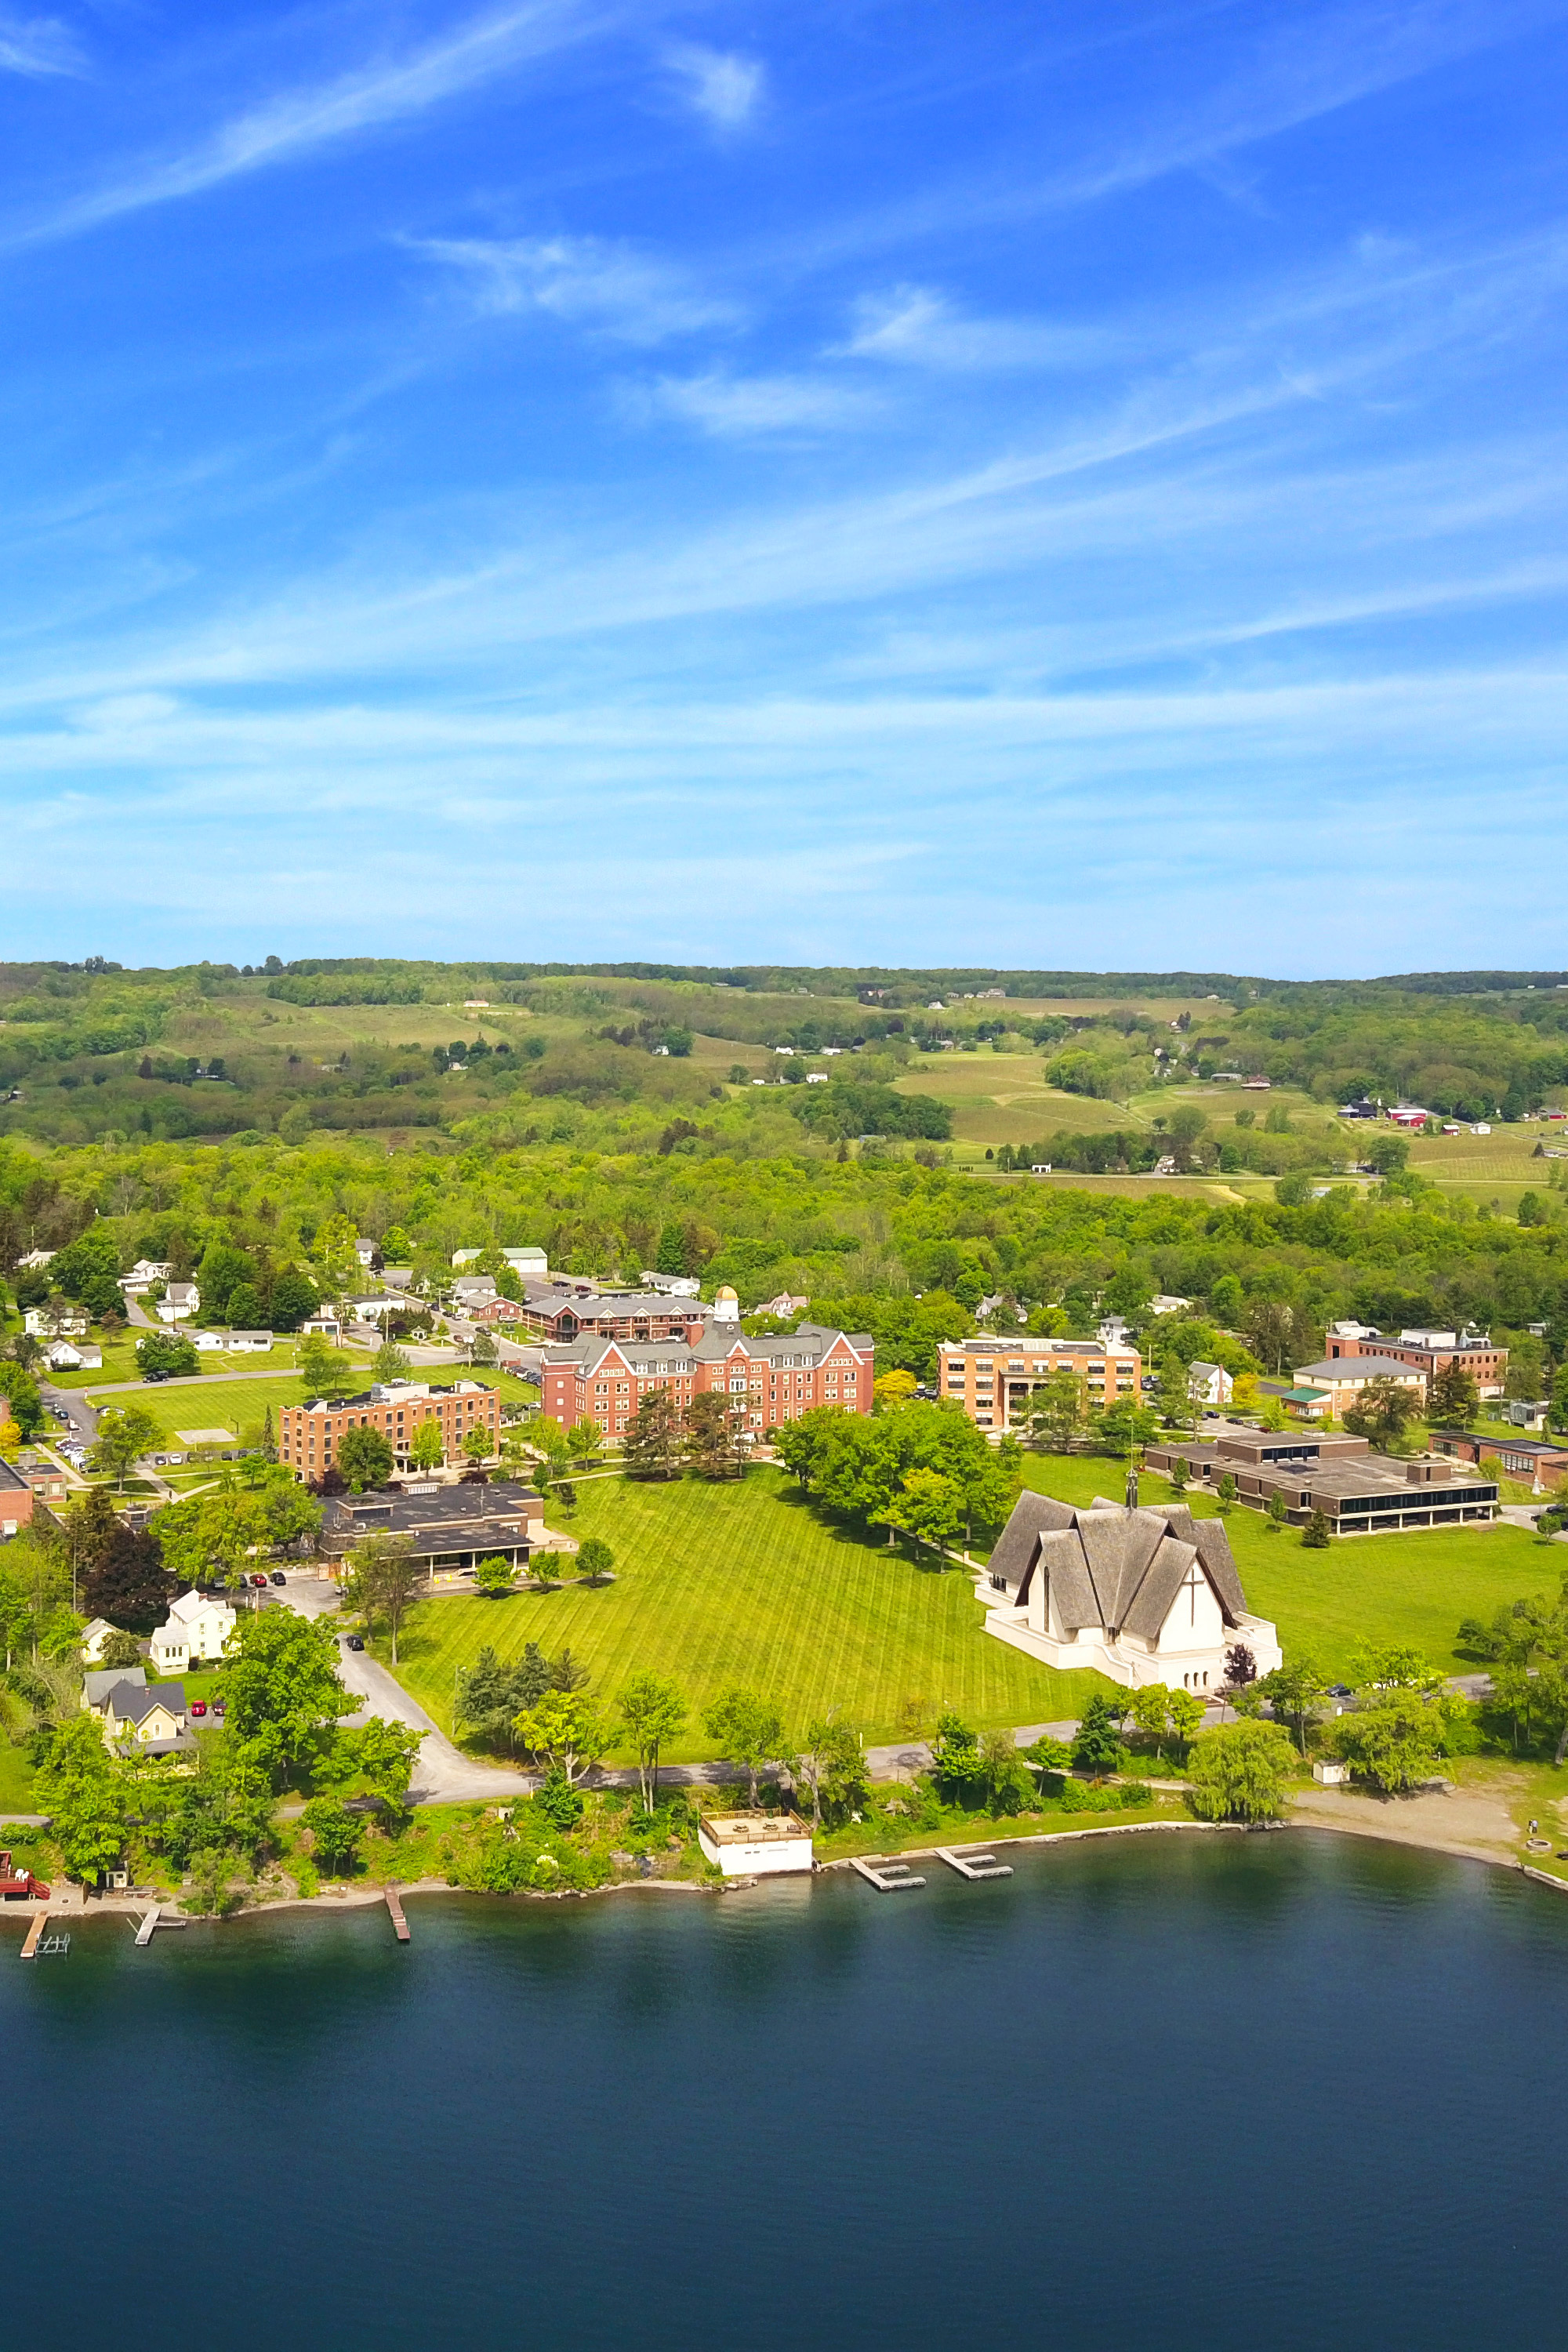 Keuka College from the air